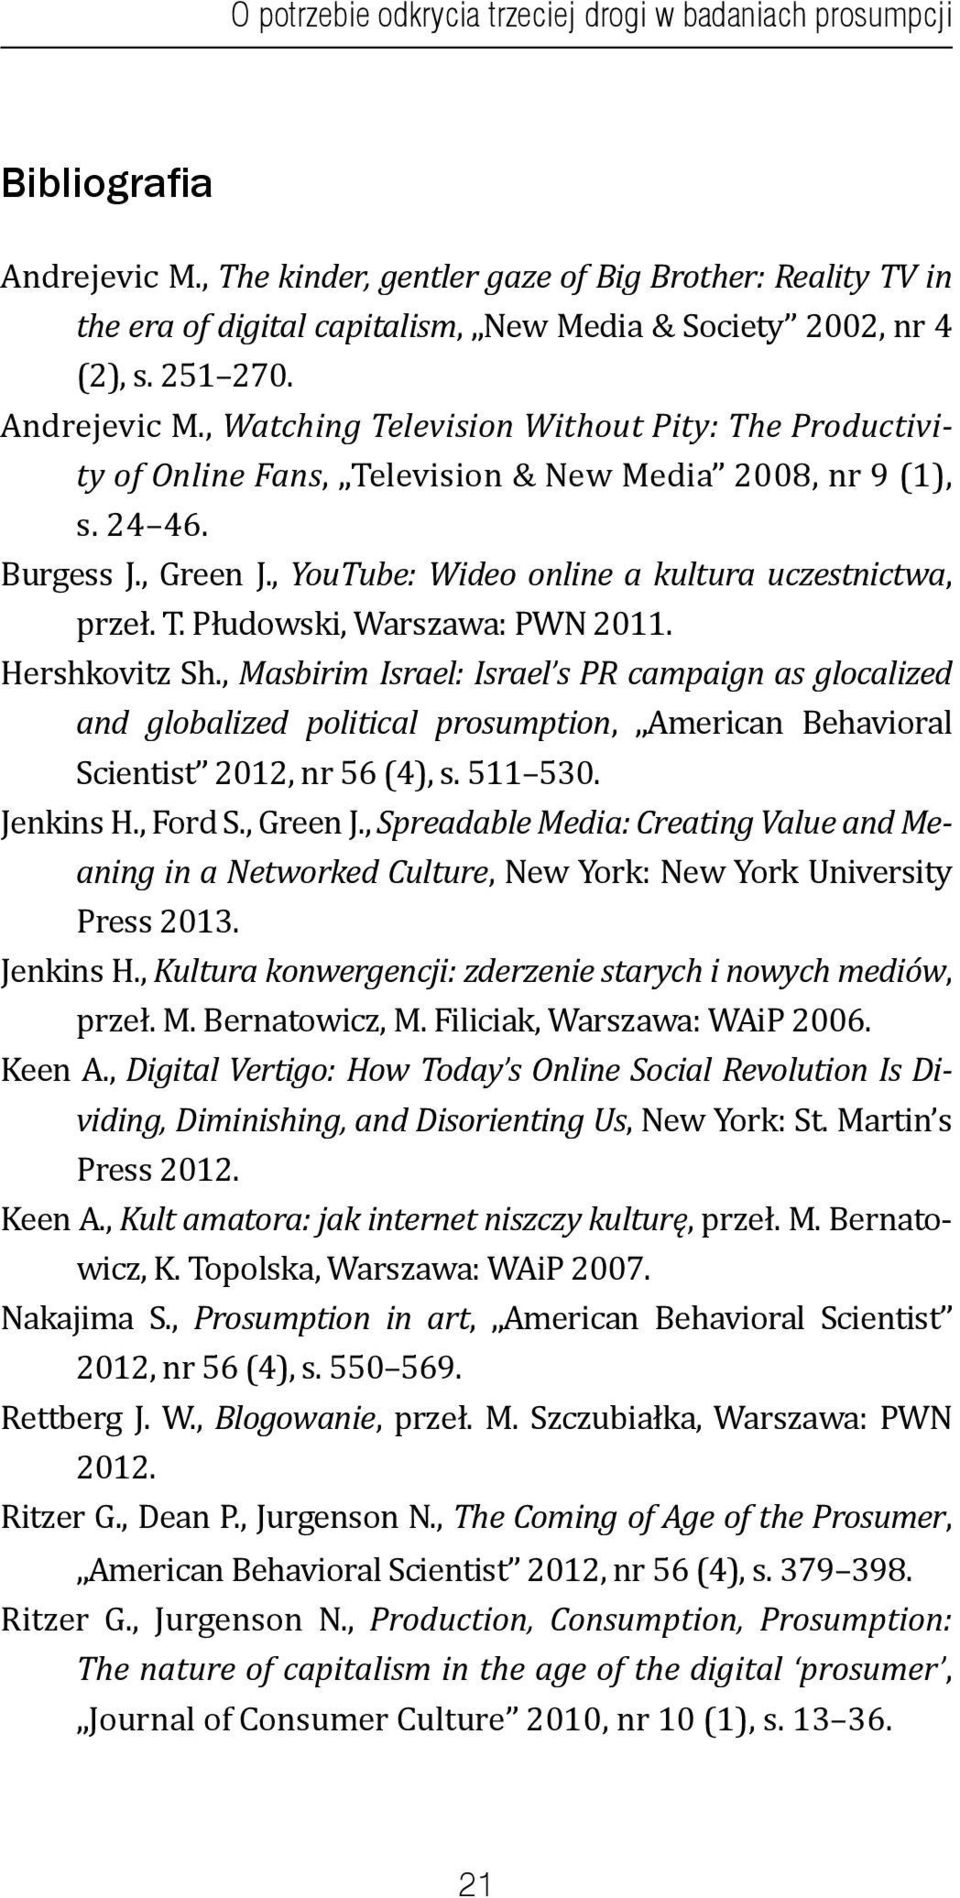 , Watching Television Without Pity: The Productivity of Online Fans, Television & New Media 2008, nr 9 (1), s. 24 46. Burgess J., Green J., YouTube: Wideo online a kultura uczestnictwa, przeł. T. Płudowski, Warszawa: PWN 2011.